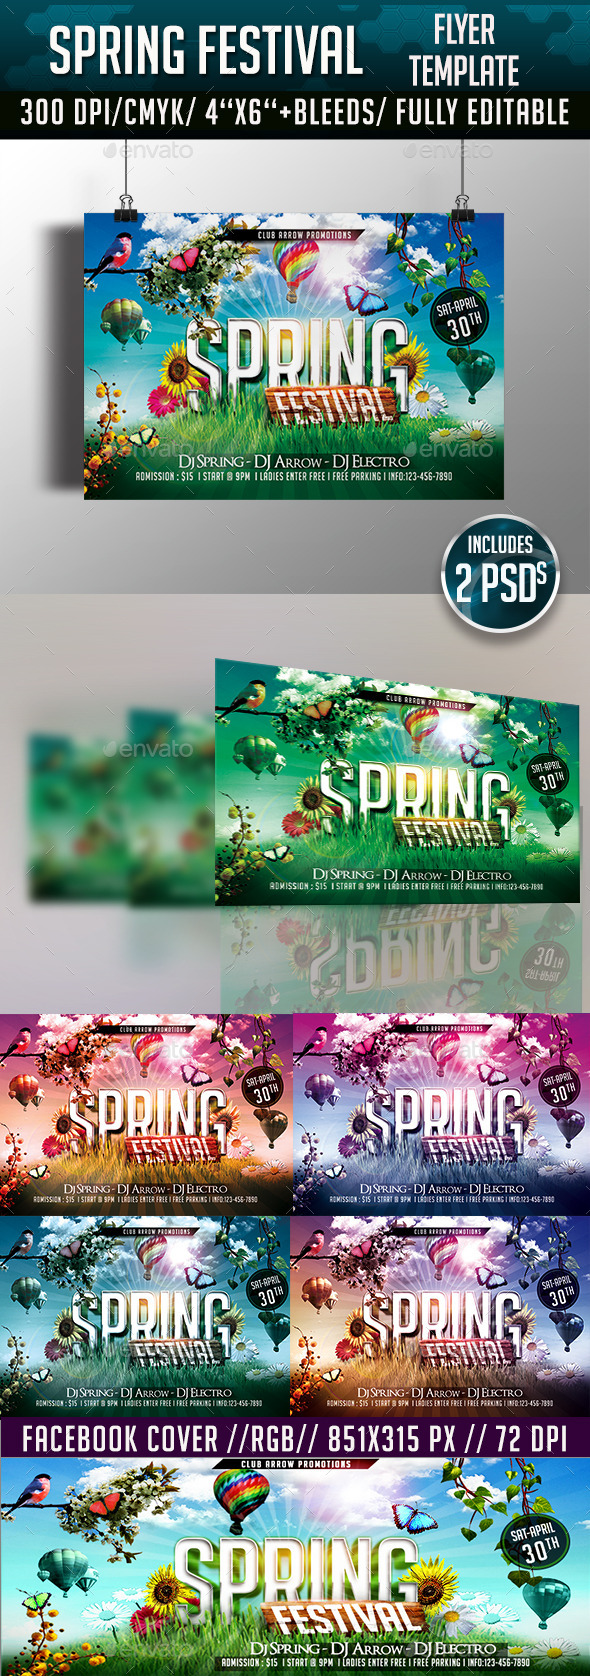 GraphicRiver Spring Festival Flyer Template 11009168